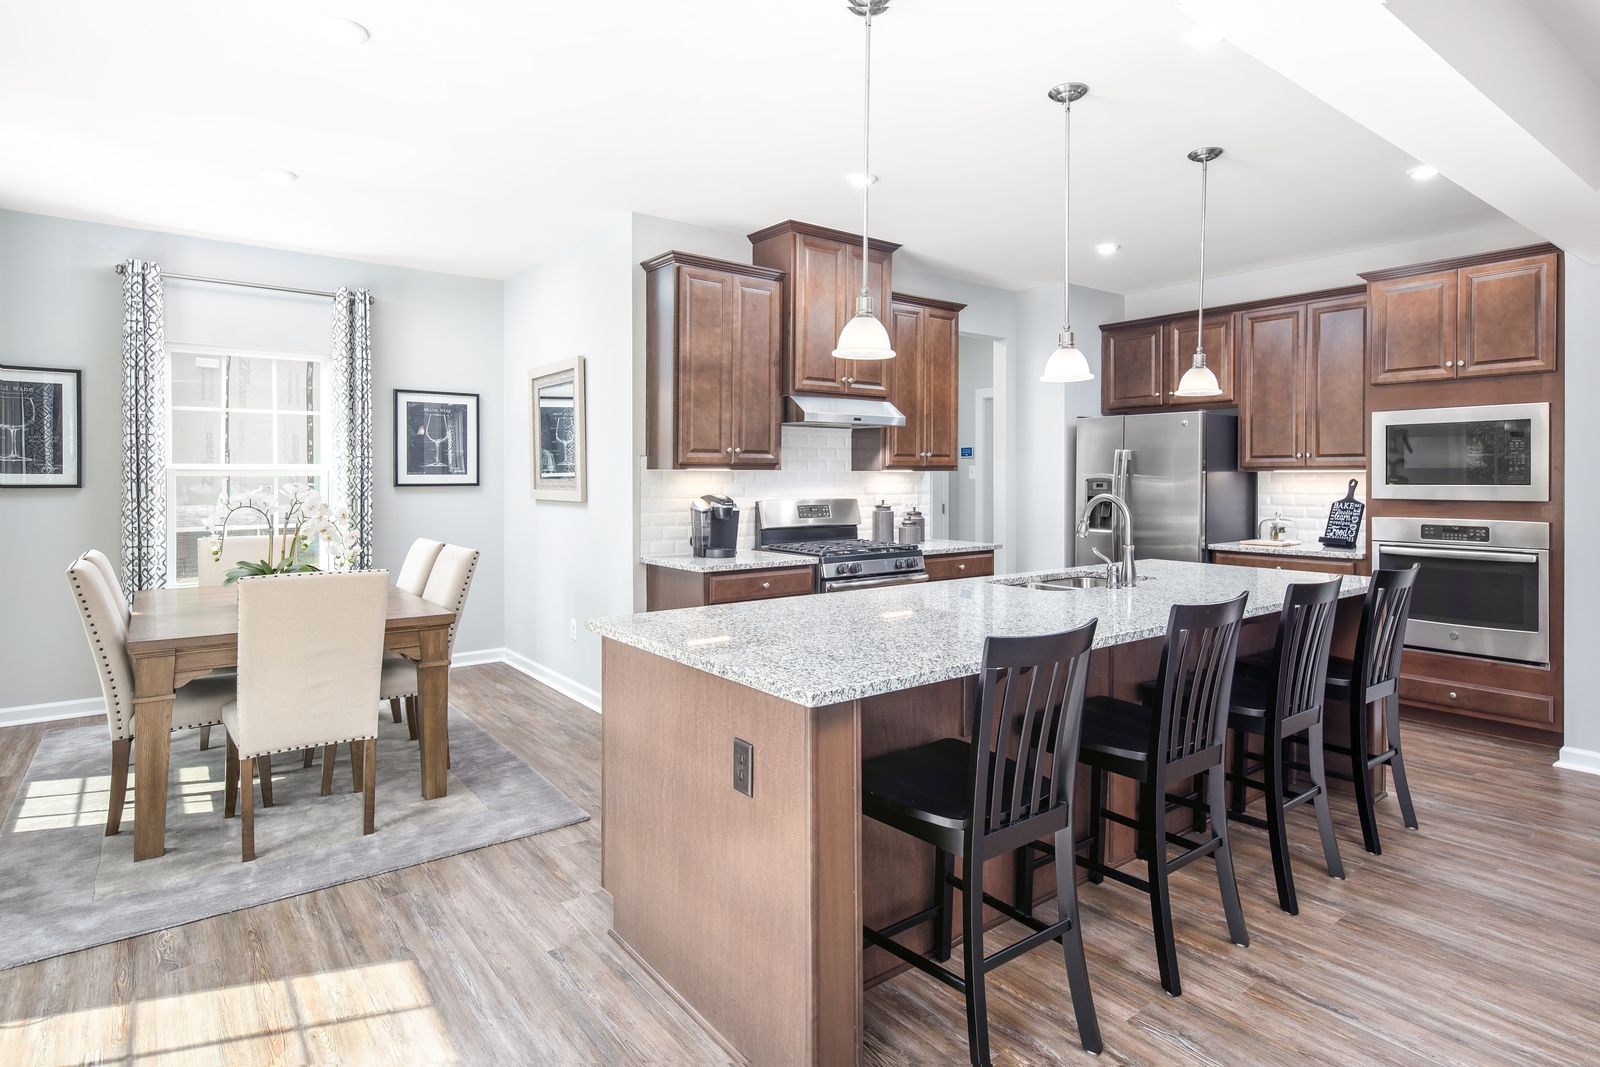 Kitchen featured in the Columbia By Ryan Homes in Washington, MD